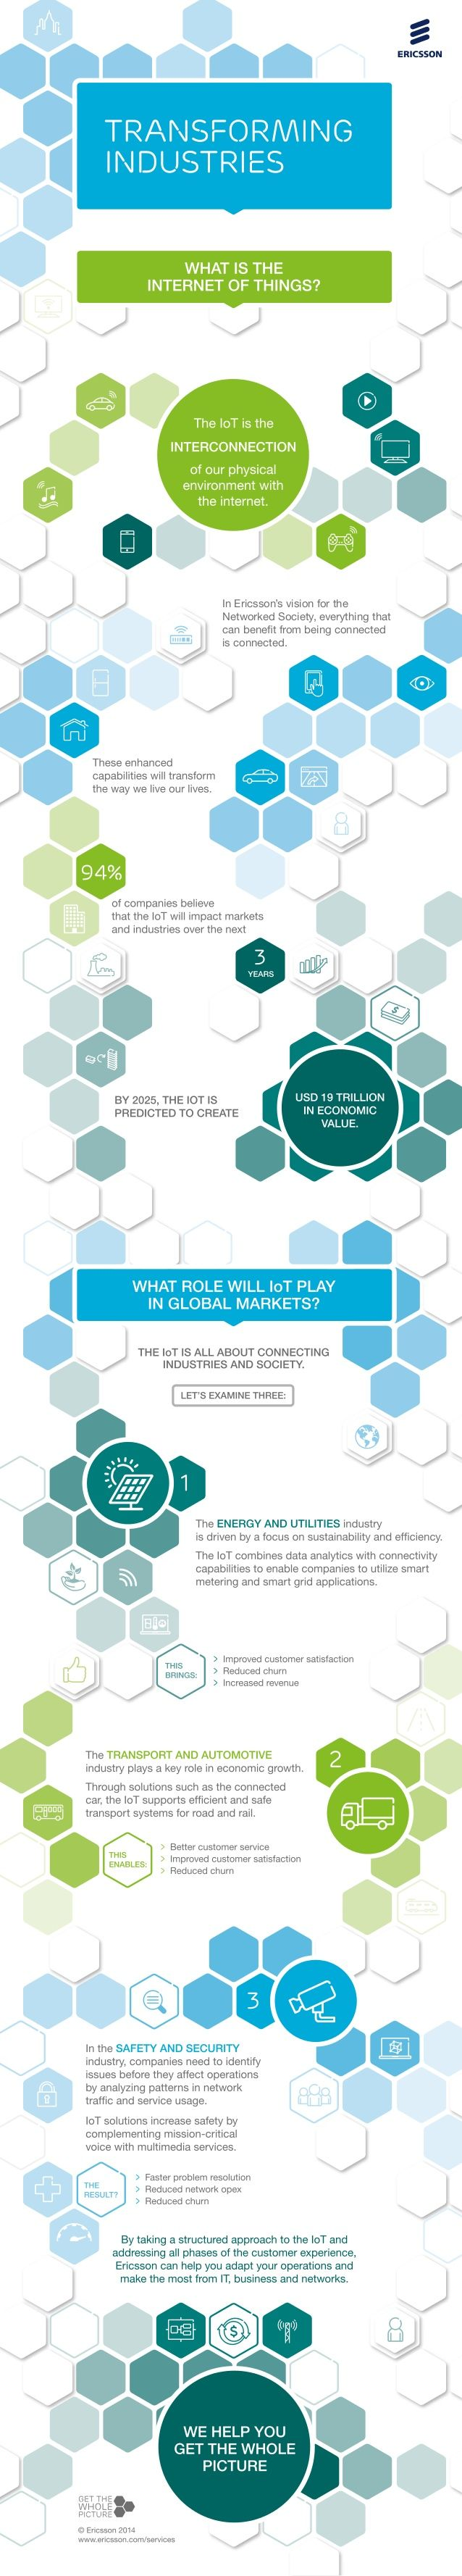 best images about internet of things technology how the internet of things will transform industry and society internet of things infographic 1